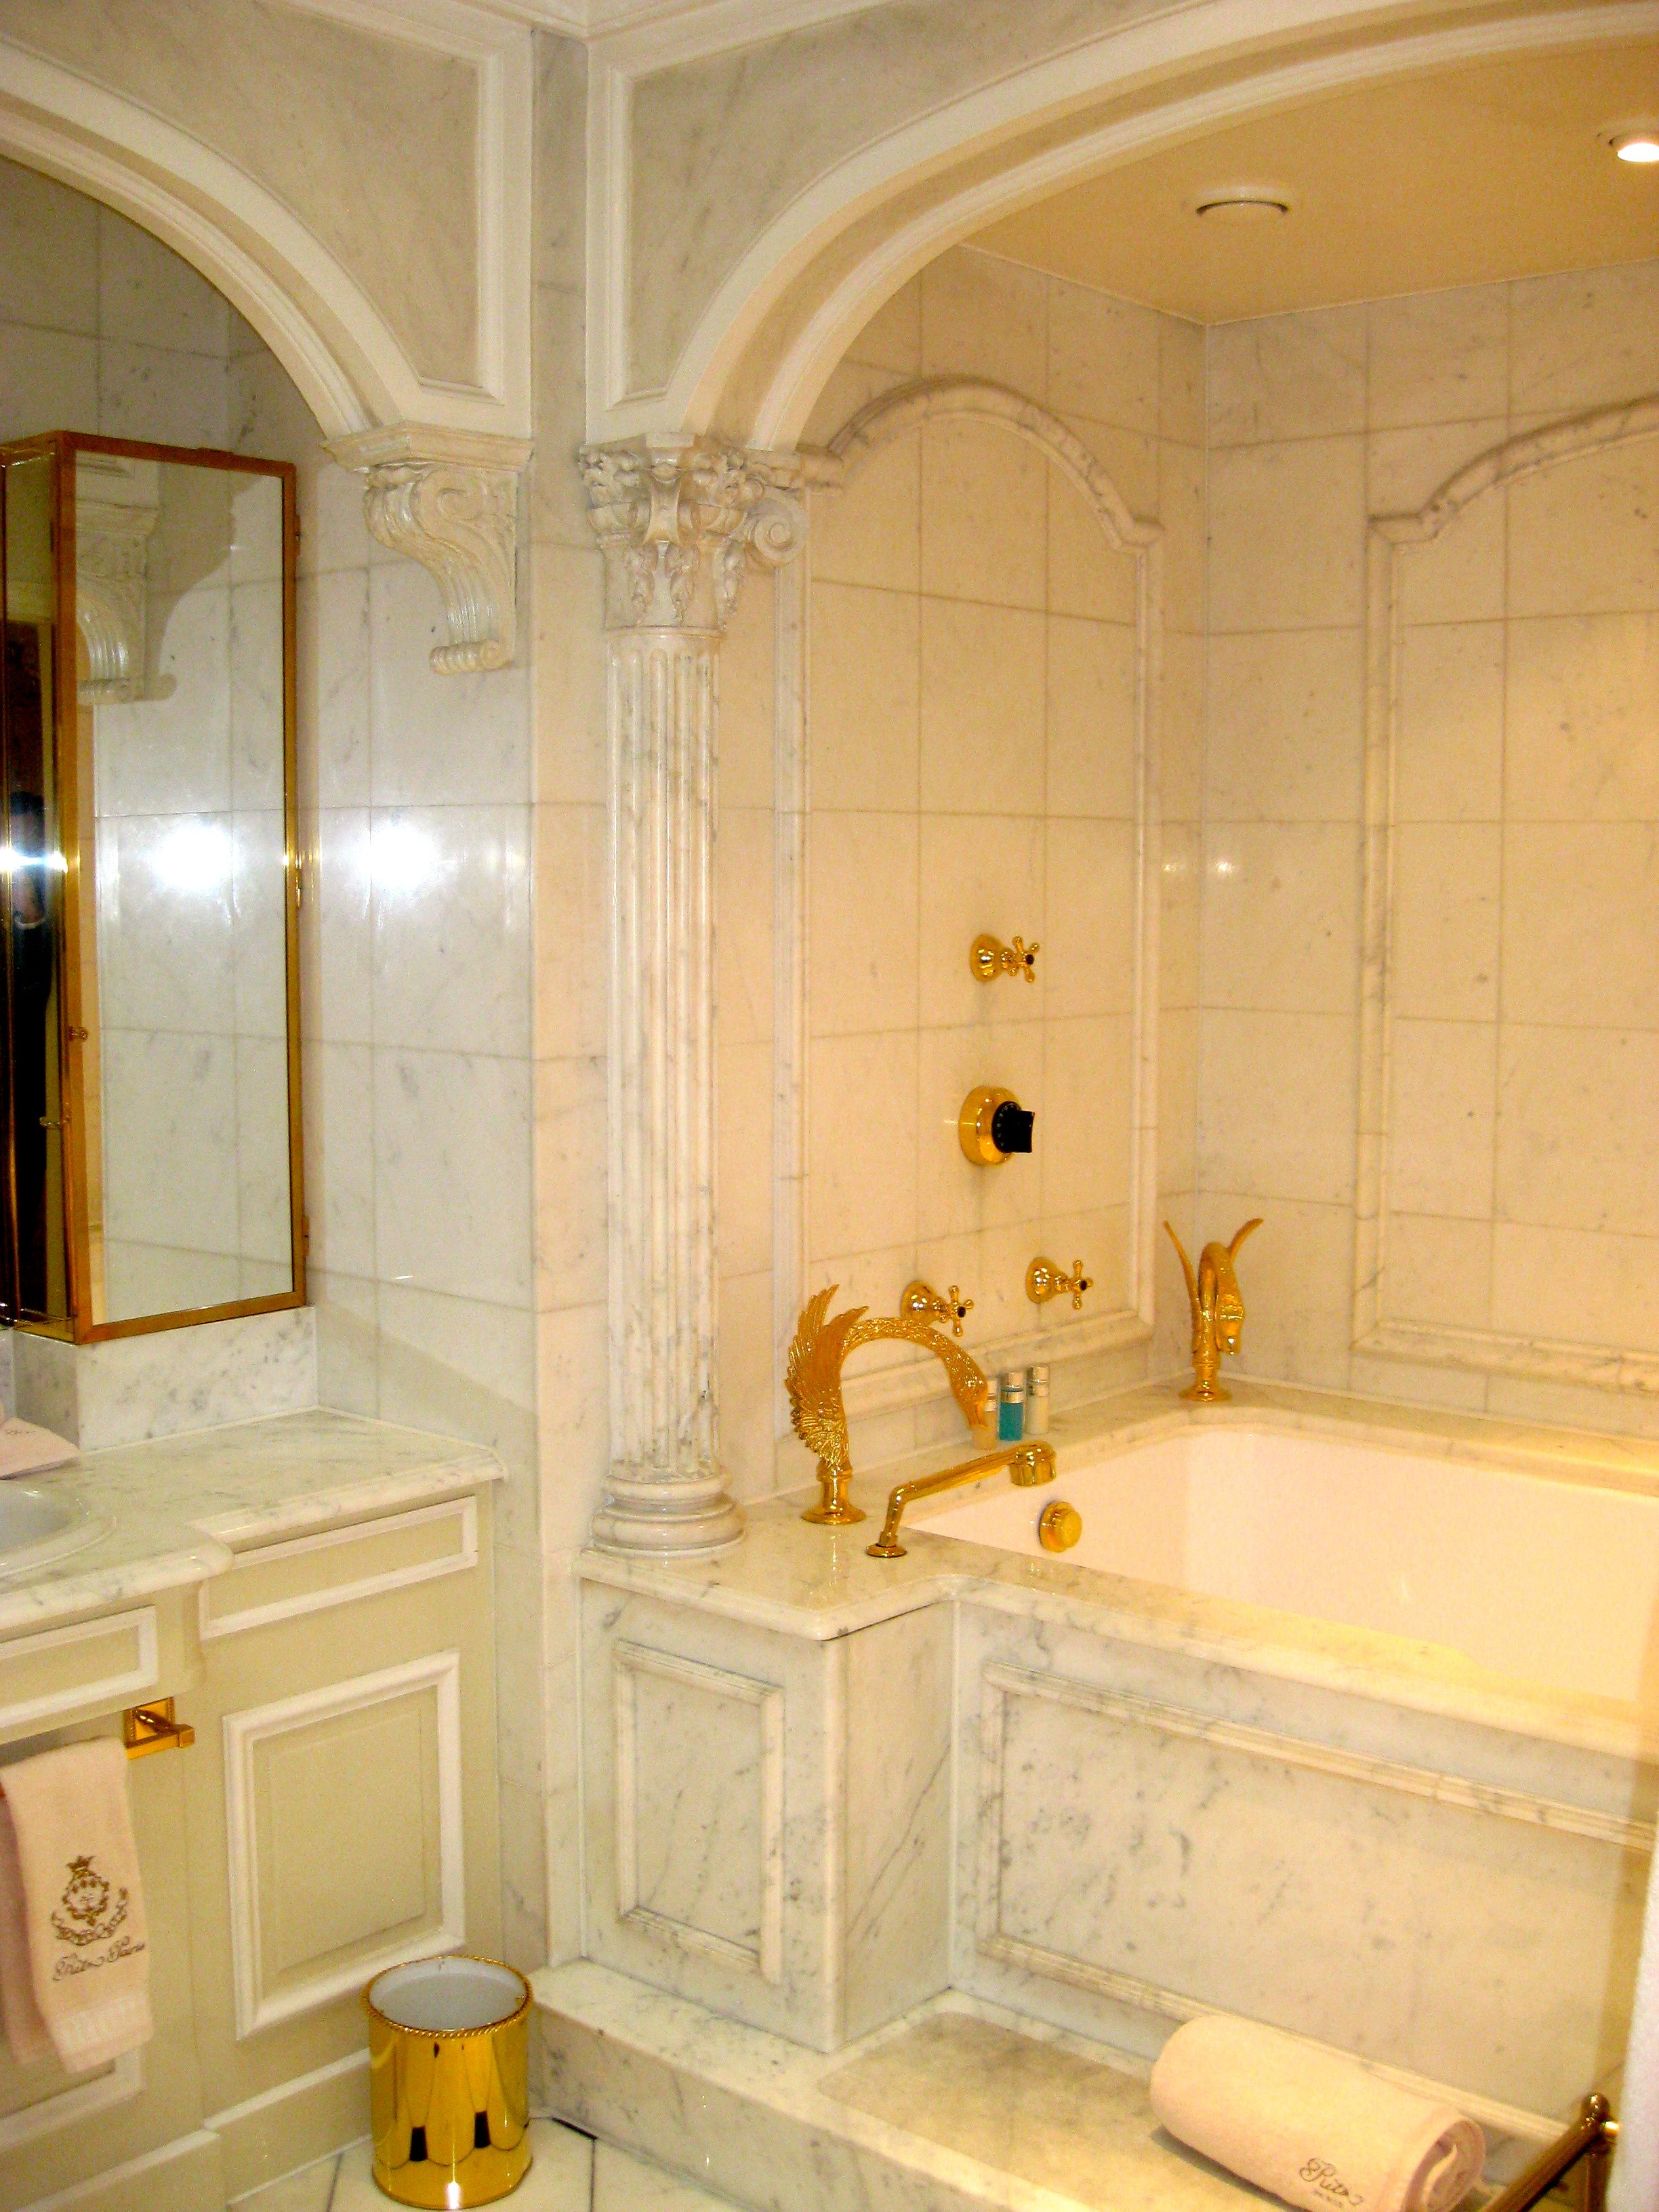 A Bathroom At The Hotel Le Ritz In Paris Note The Gold